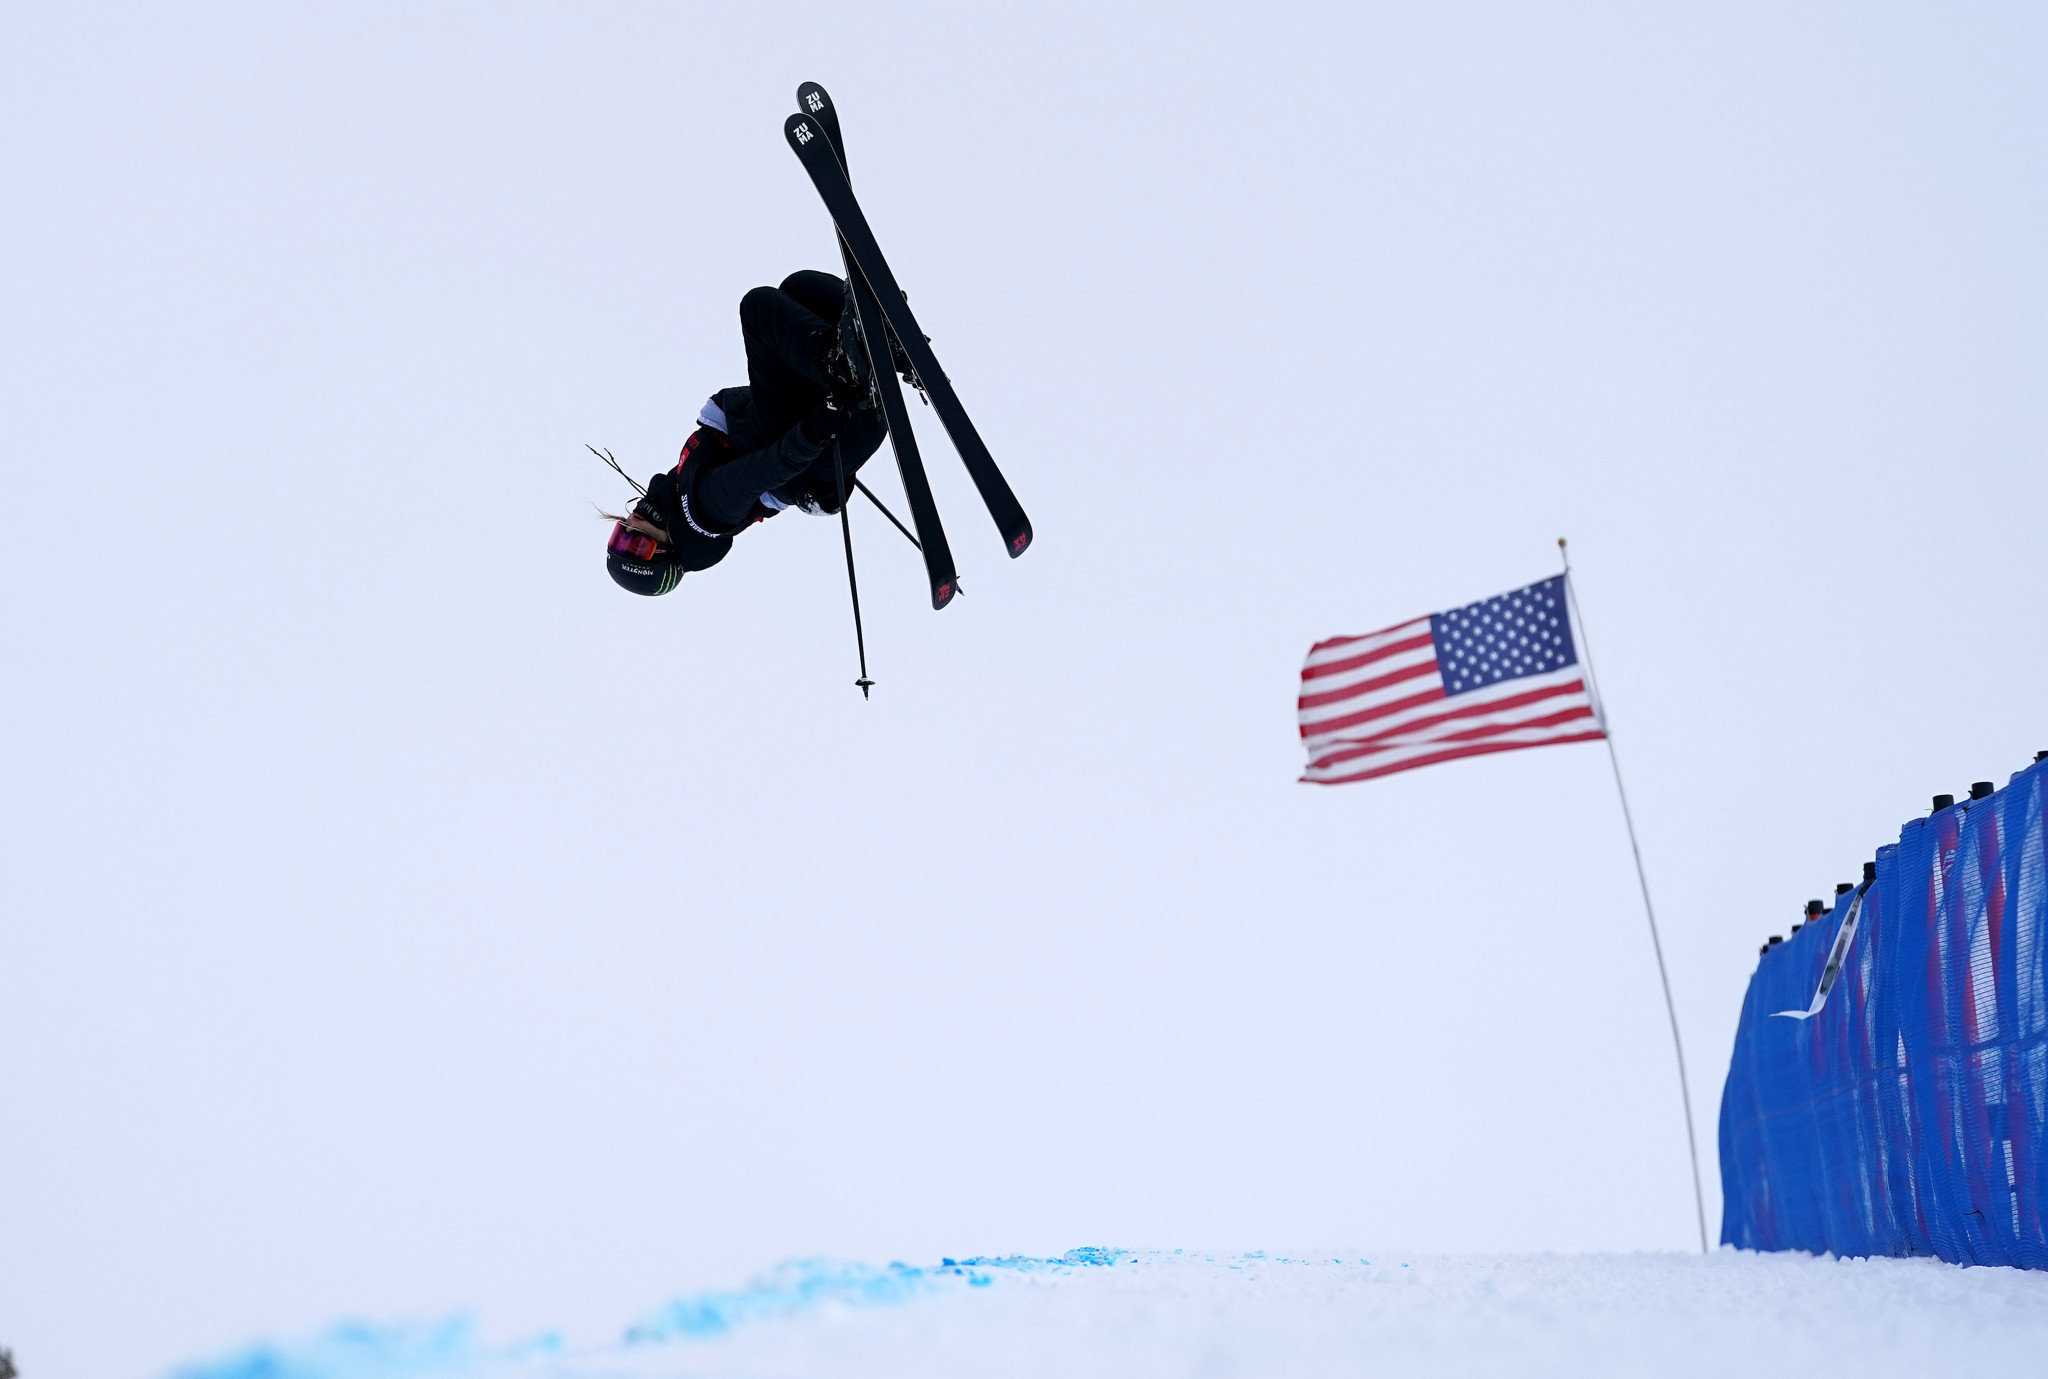 Olympic champion Sharpe searching for first FIS Freeski Halfpipe World Cup victory of the season